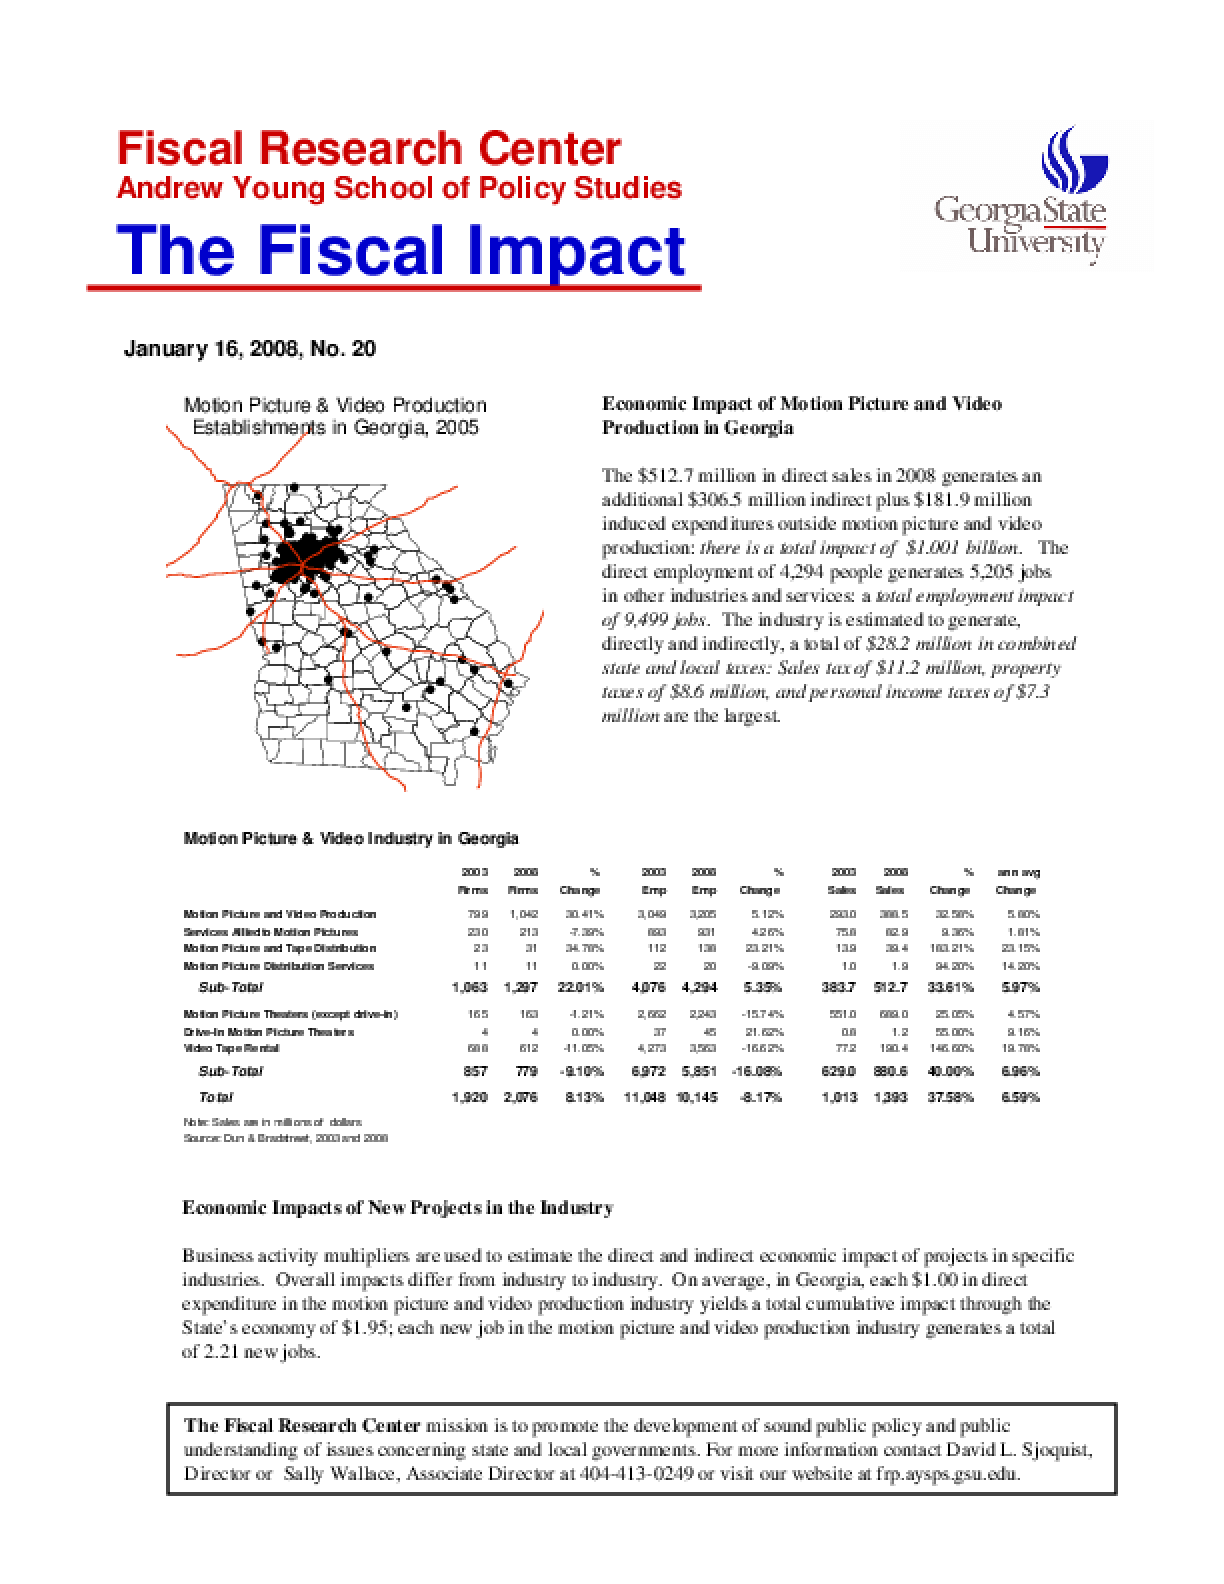 Economic Impact of Motion Picture and Video Production in Georgia